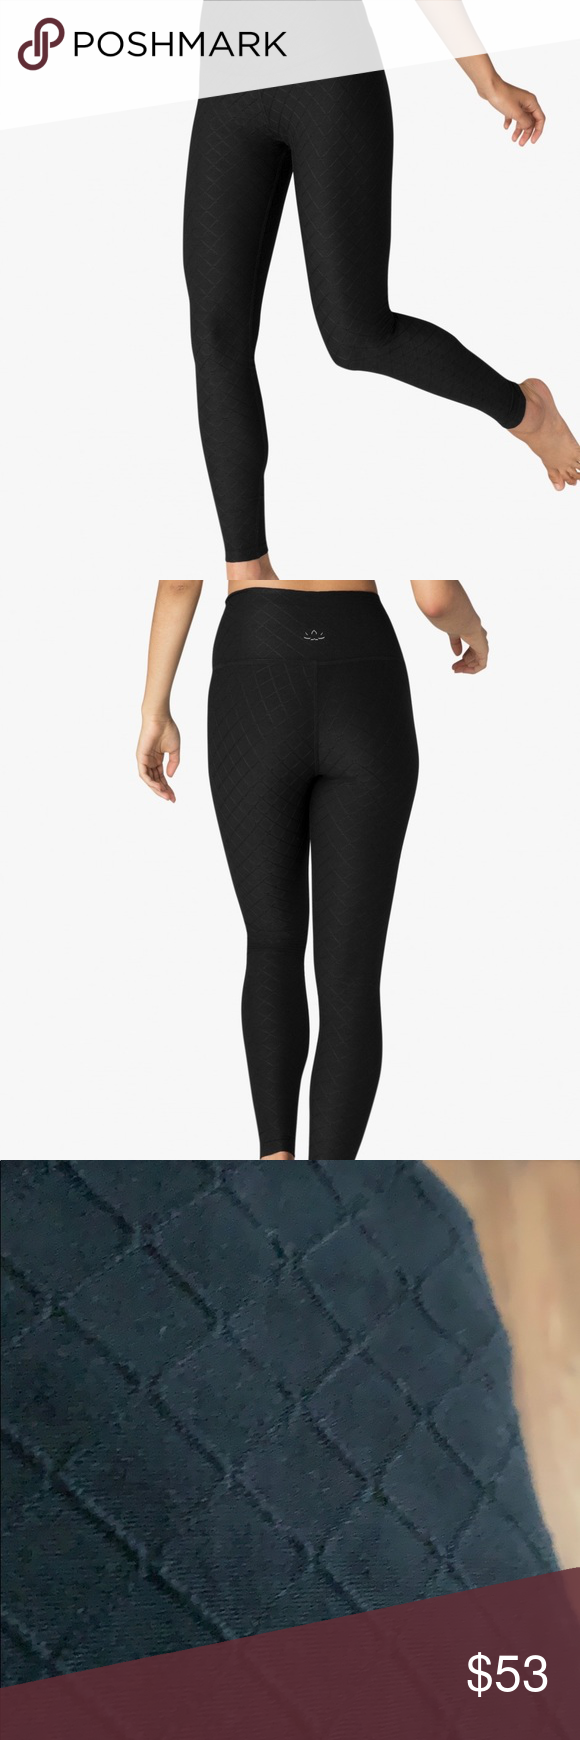 c39a63127f Can't Quilt You High Waisted Beyond Yoga Leggings Beyond Yoga best-selling  legging with an ultra modern update using this buttery soft Quilted Plush  fabric.